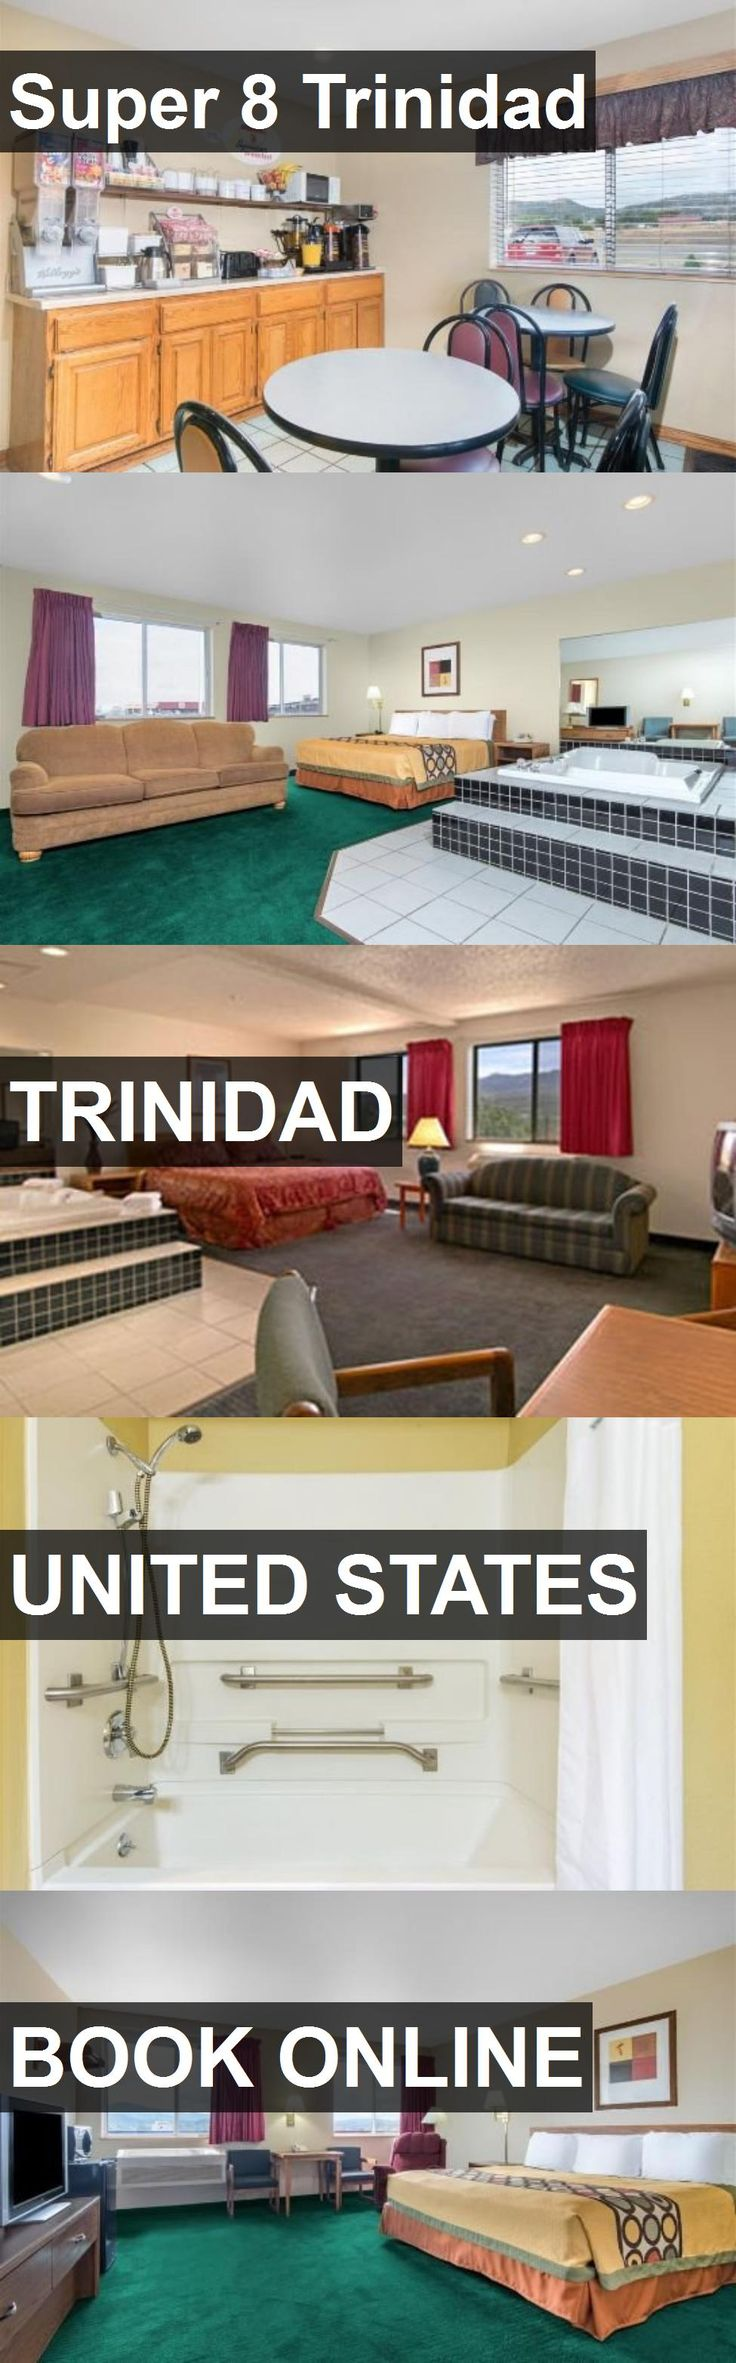 Hotel Super 8 Trinidad in Trinidad, United States. For more information, photos, reviews and best prices please follow the link. #UnitedStates #Trinidad #Super8Trinidad #hotel #travel #vacation